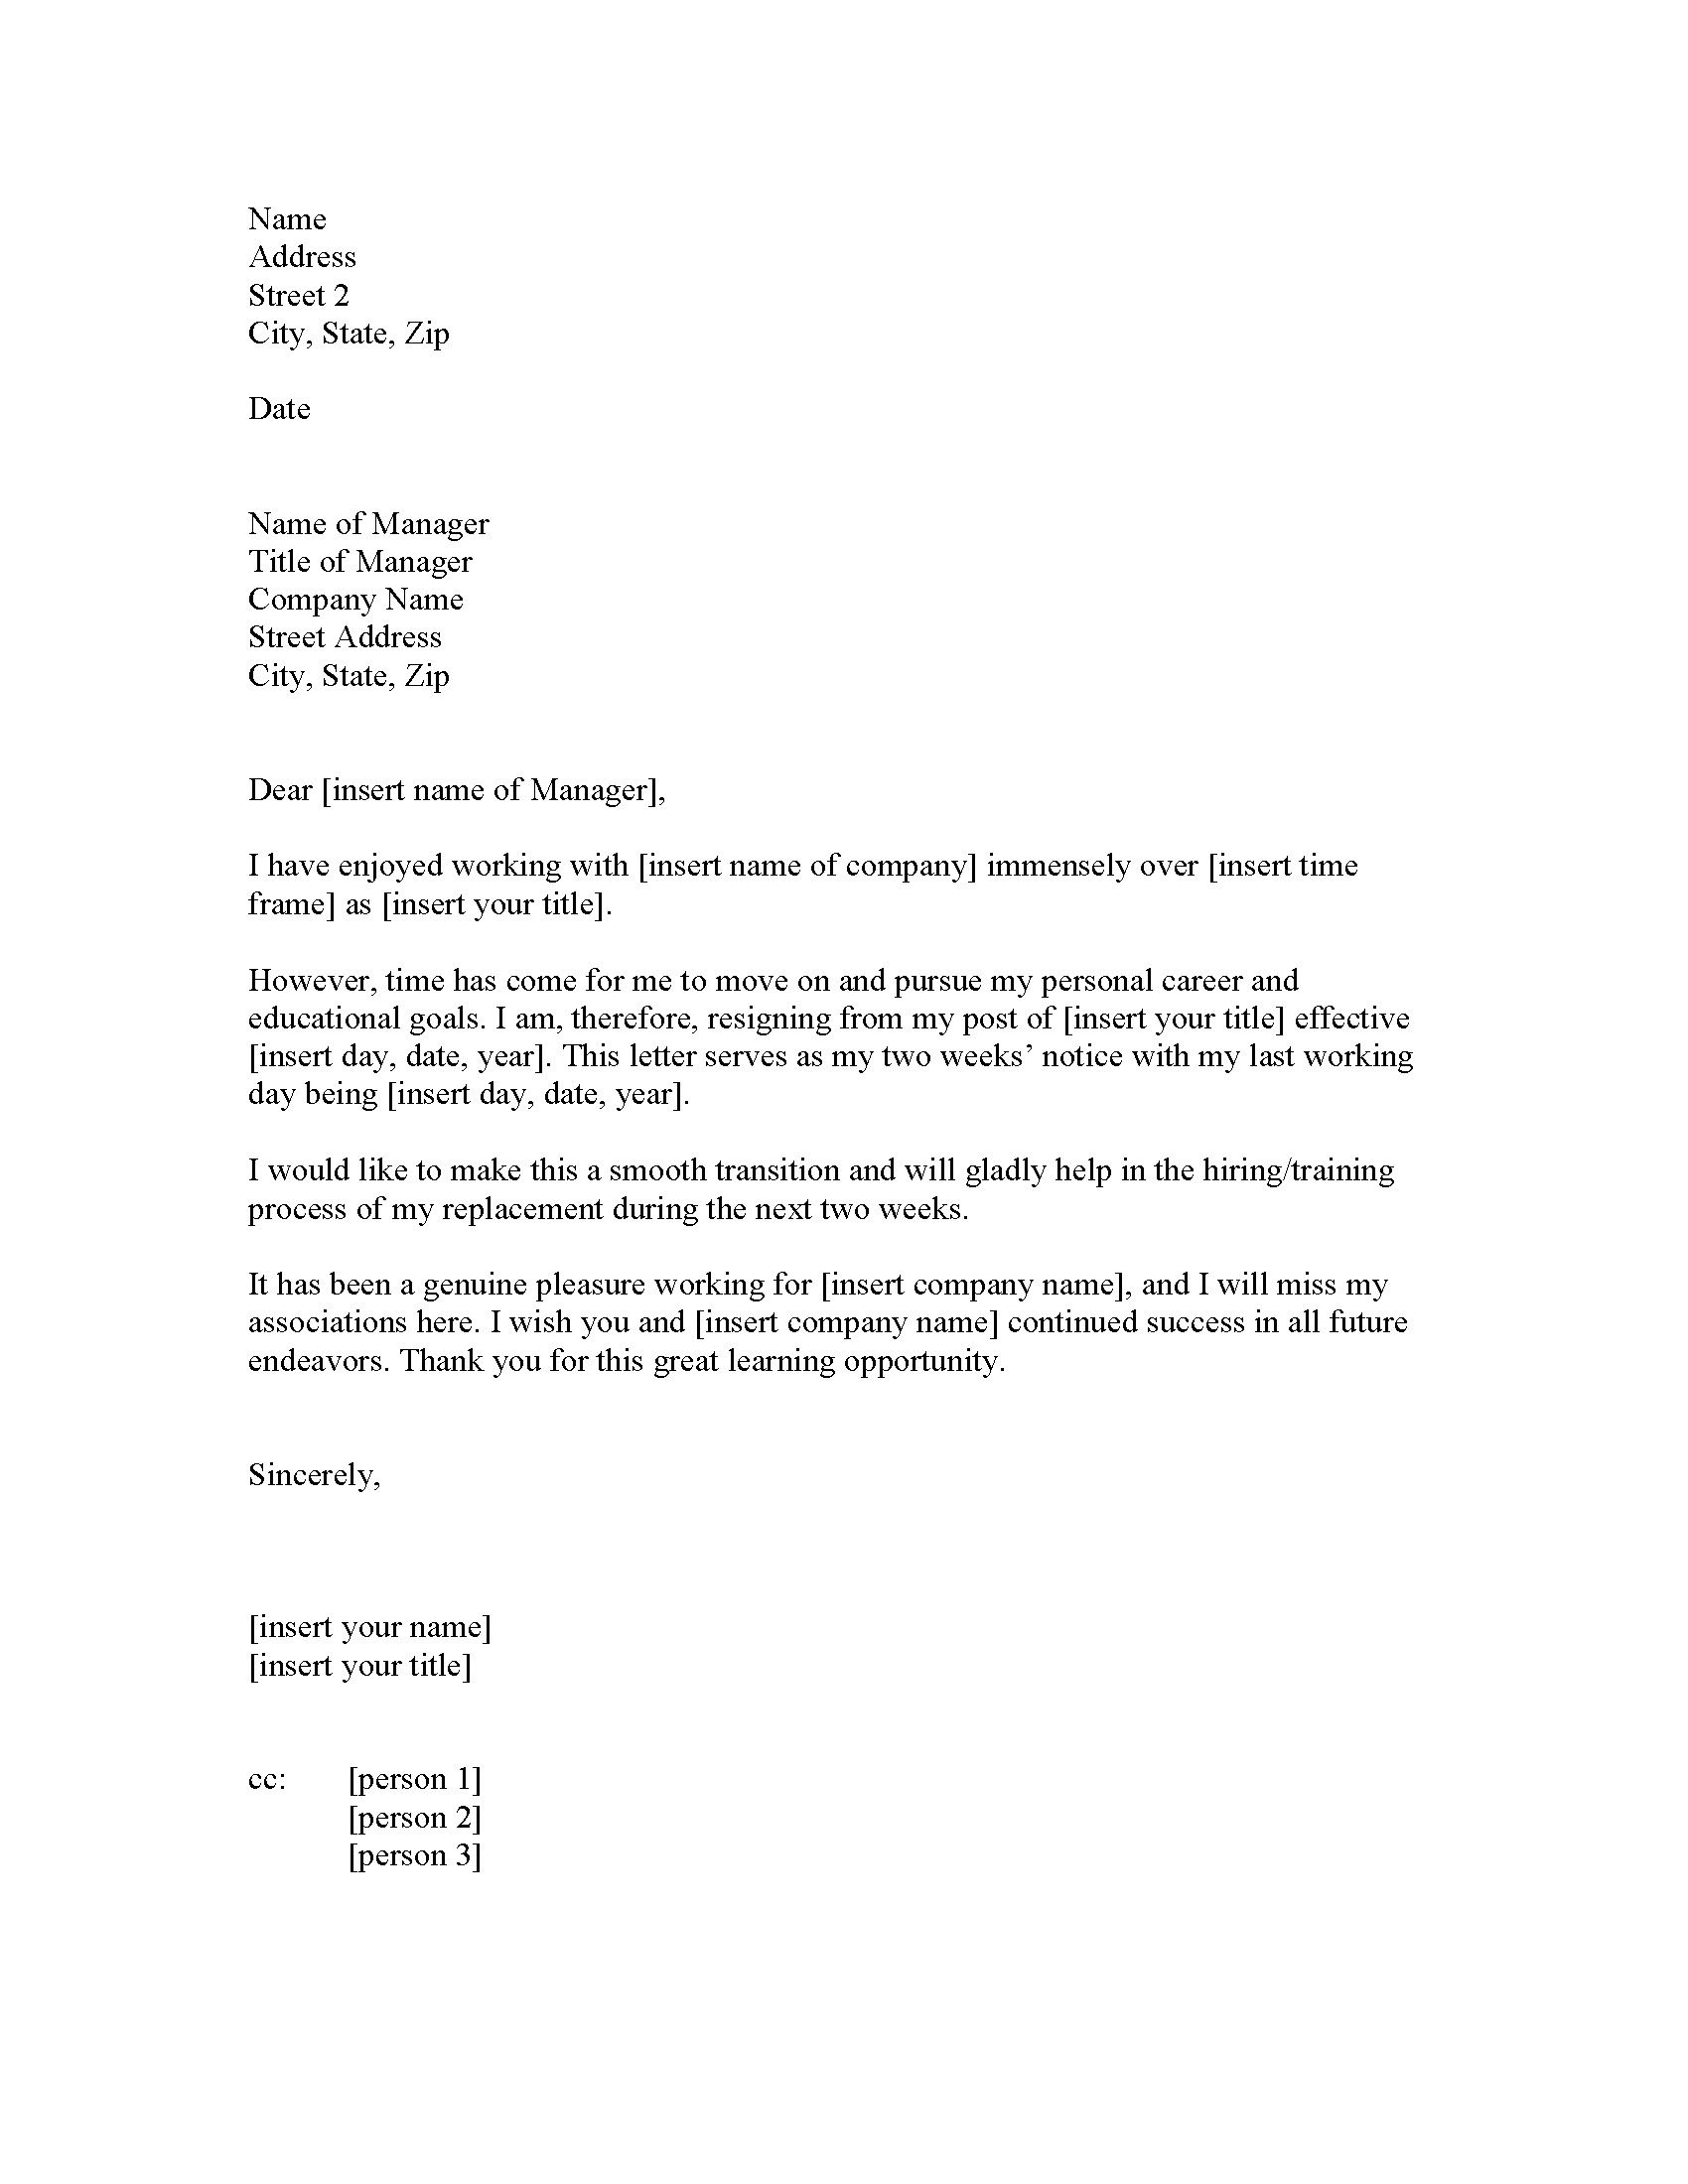 TwoWeek Resignation Letter Samples – Letter Format of Resignation